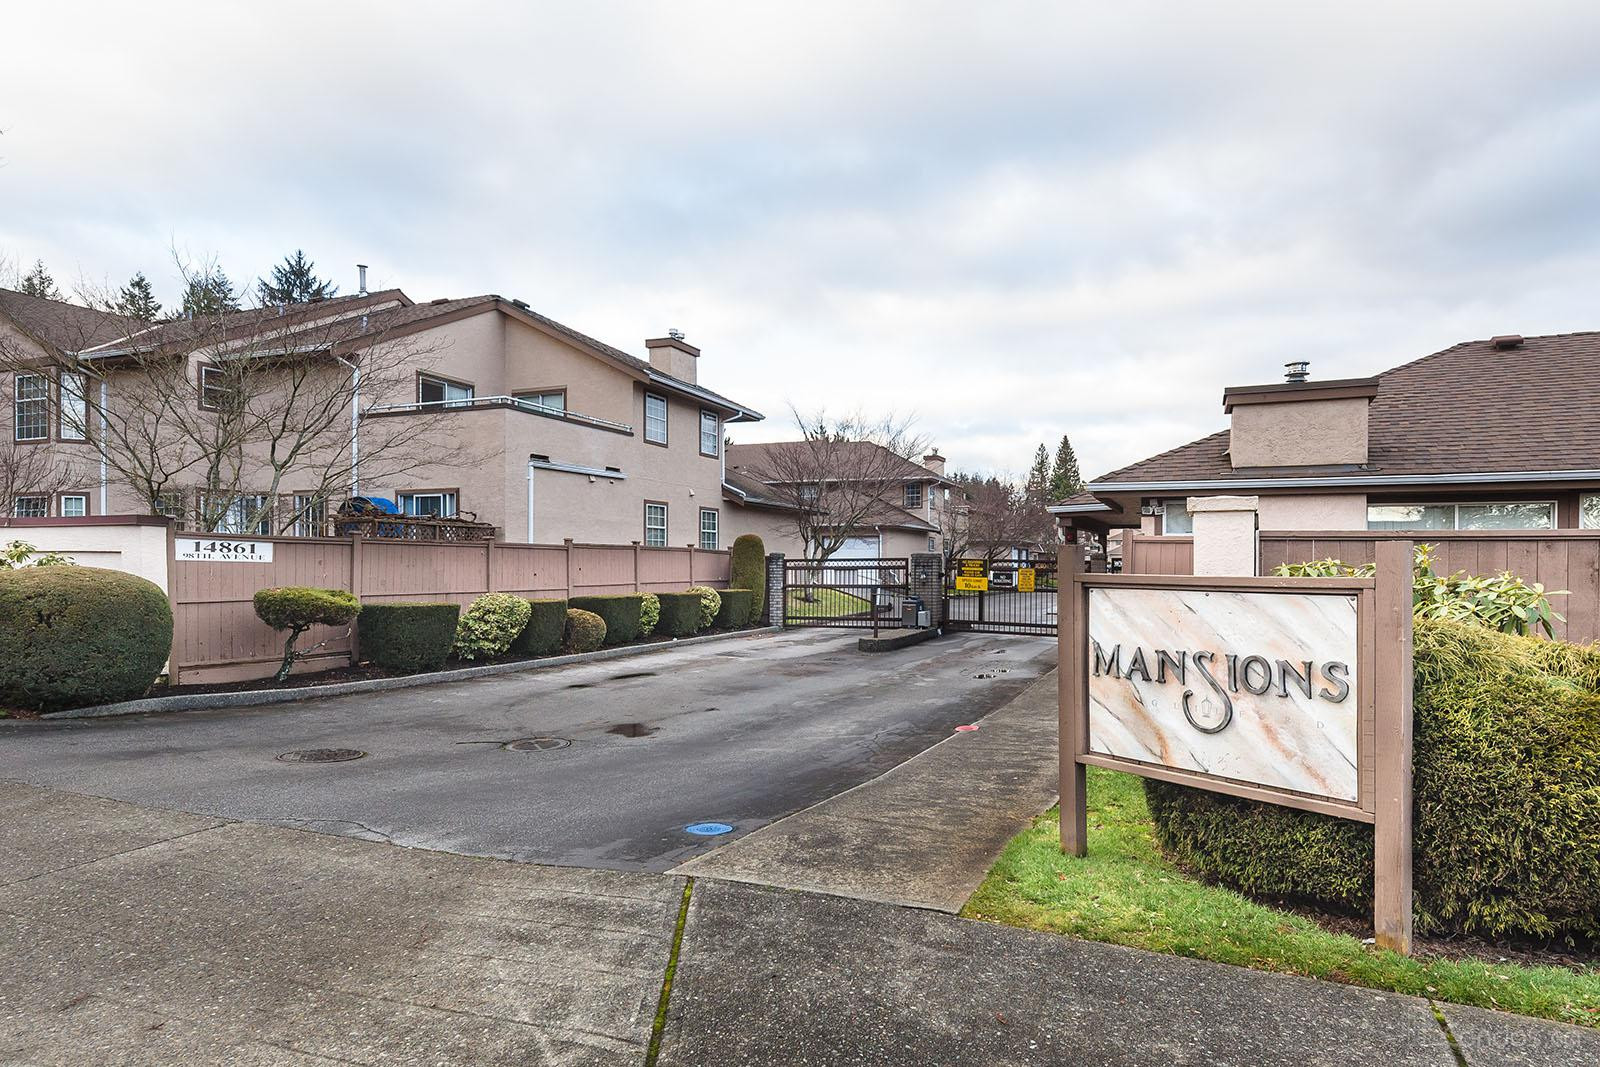 The Mansions at 14861 98 Ave, Surrey 1